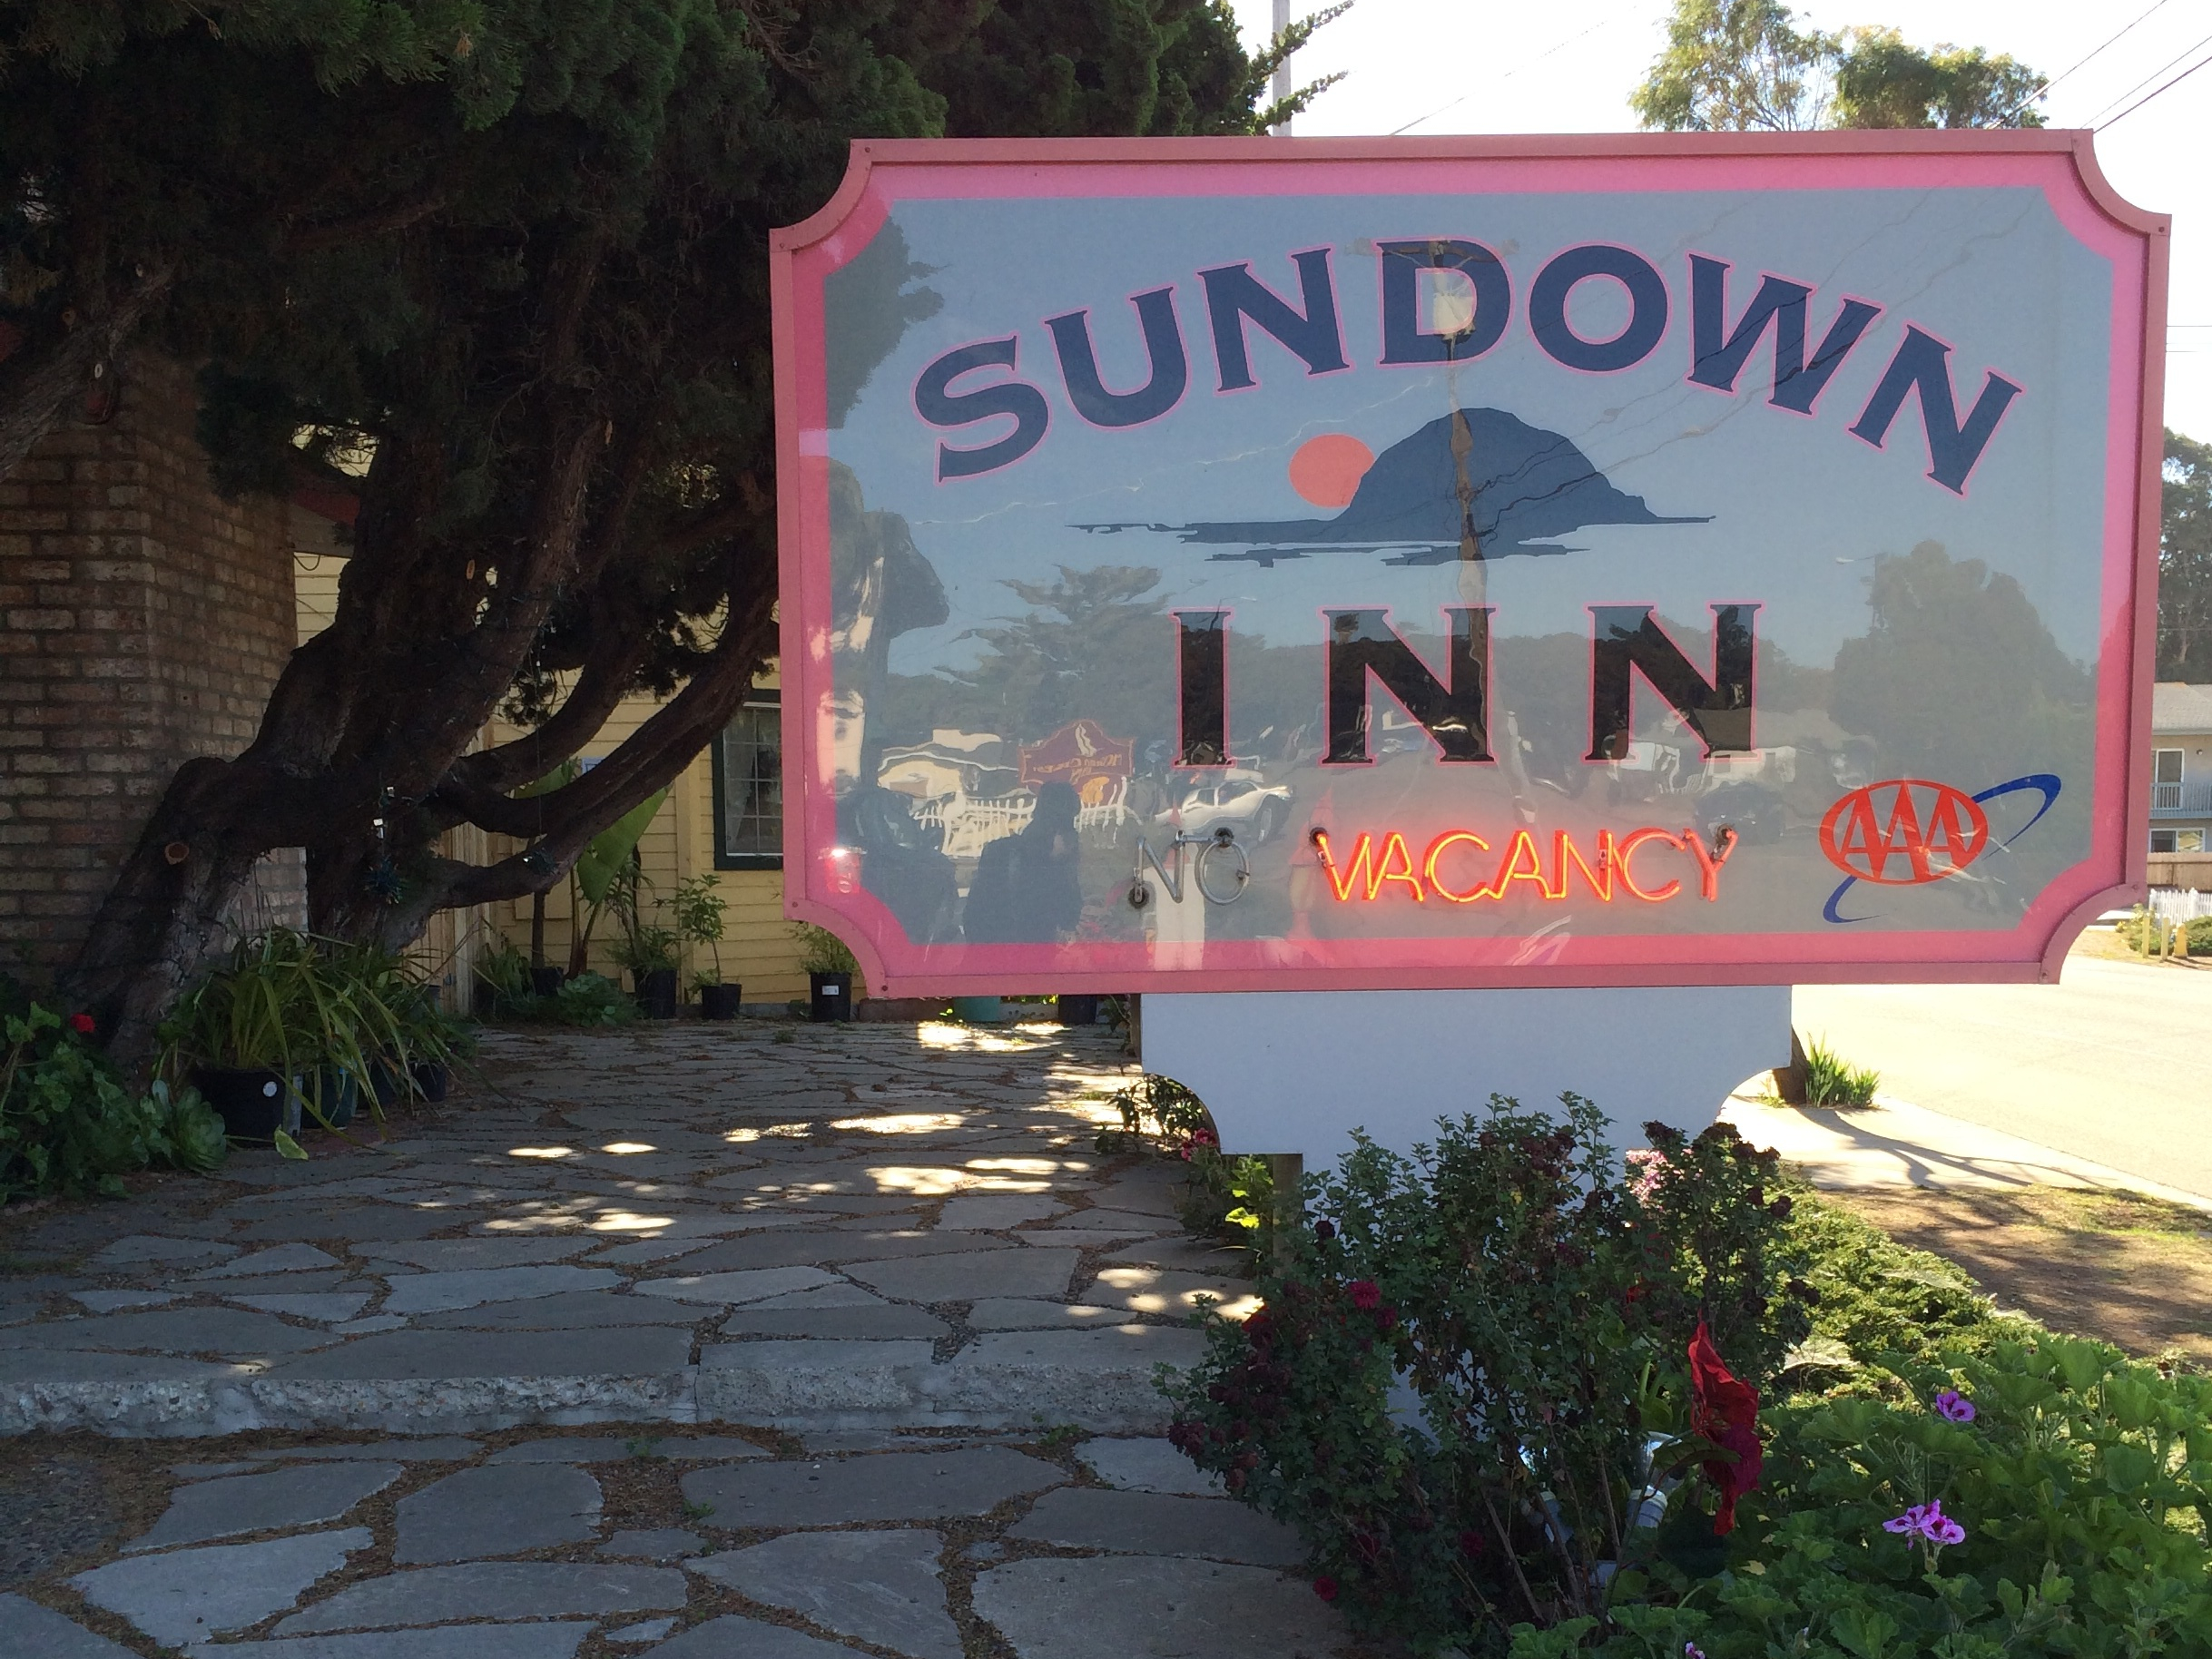 photos-page/SundownInnsign.jpg